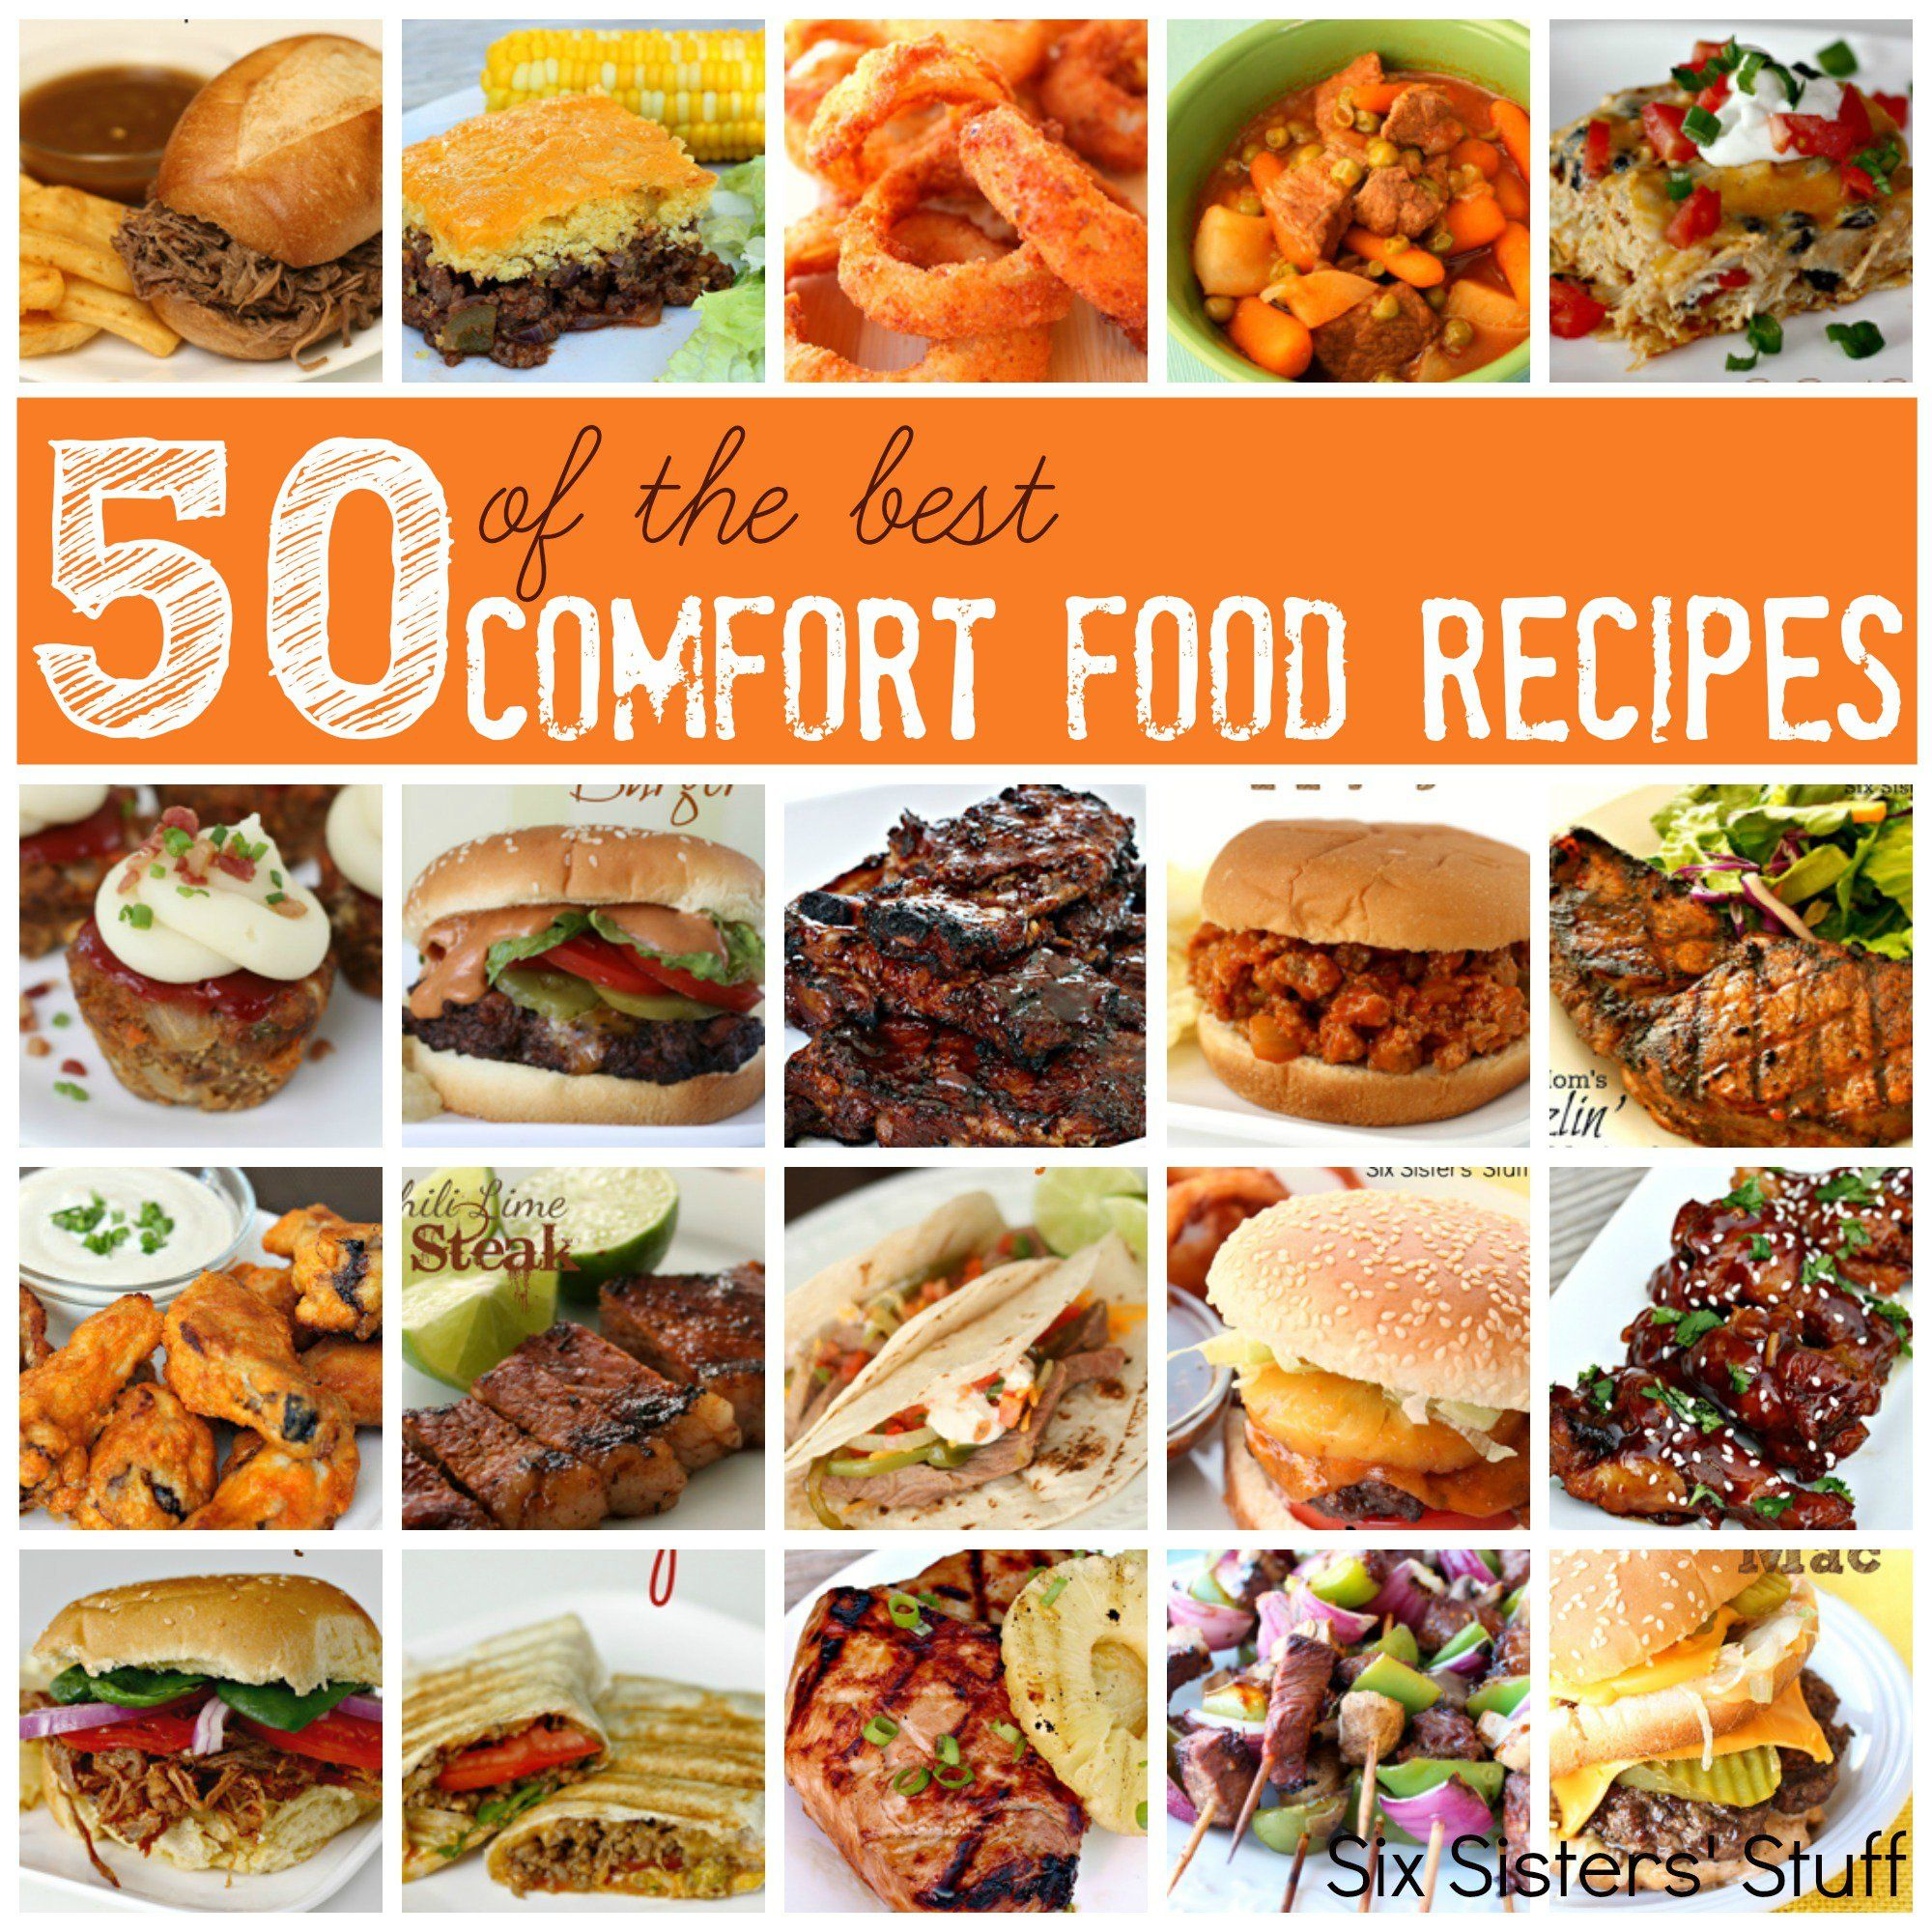 50 Of The Best Comfort Food Recipes From Www Sixsistersstuff Com 50 Of Our Favorite Recipes That Are Delicious And Goo Comfort Food Best Comfort Food Recipes